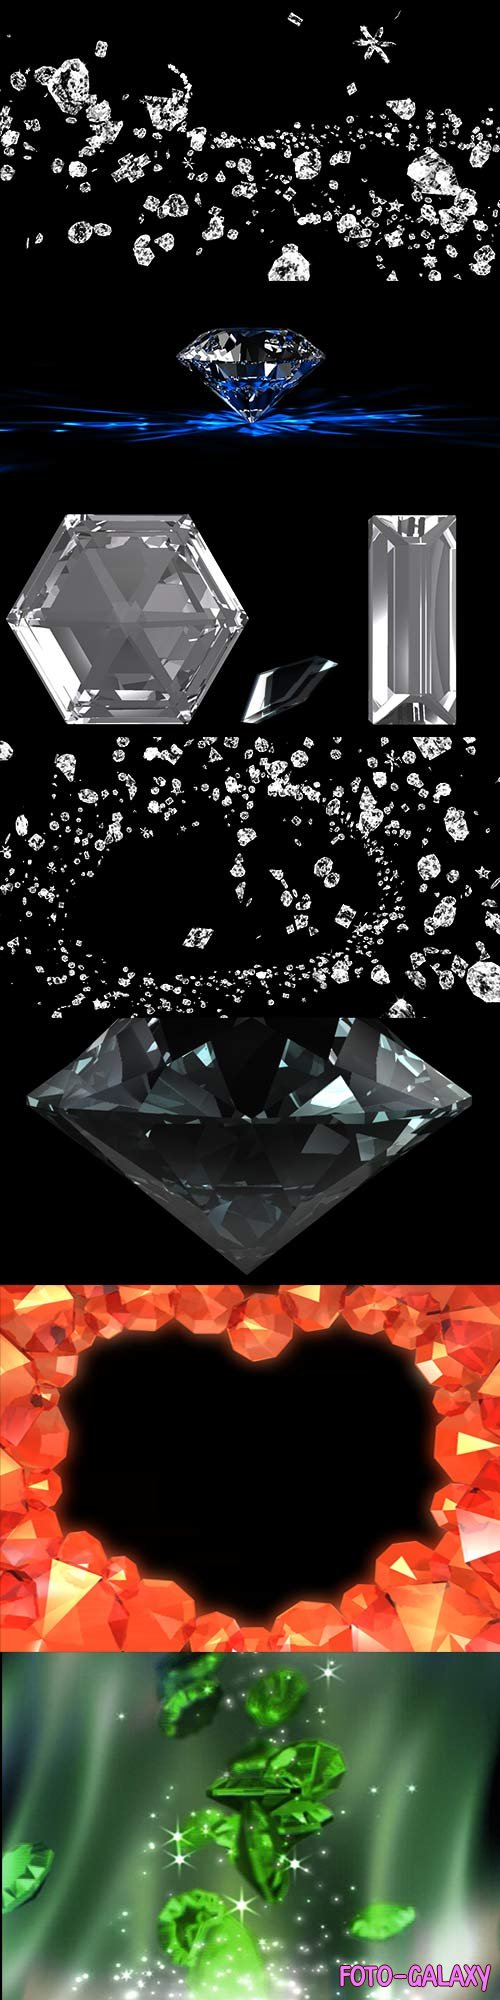 11 Video footage of precious stones, diamonds